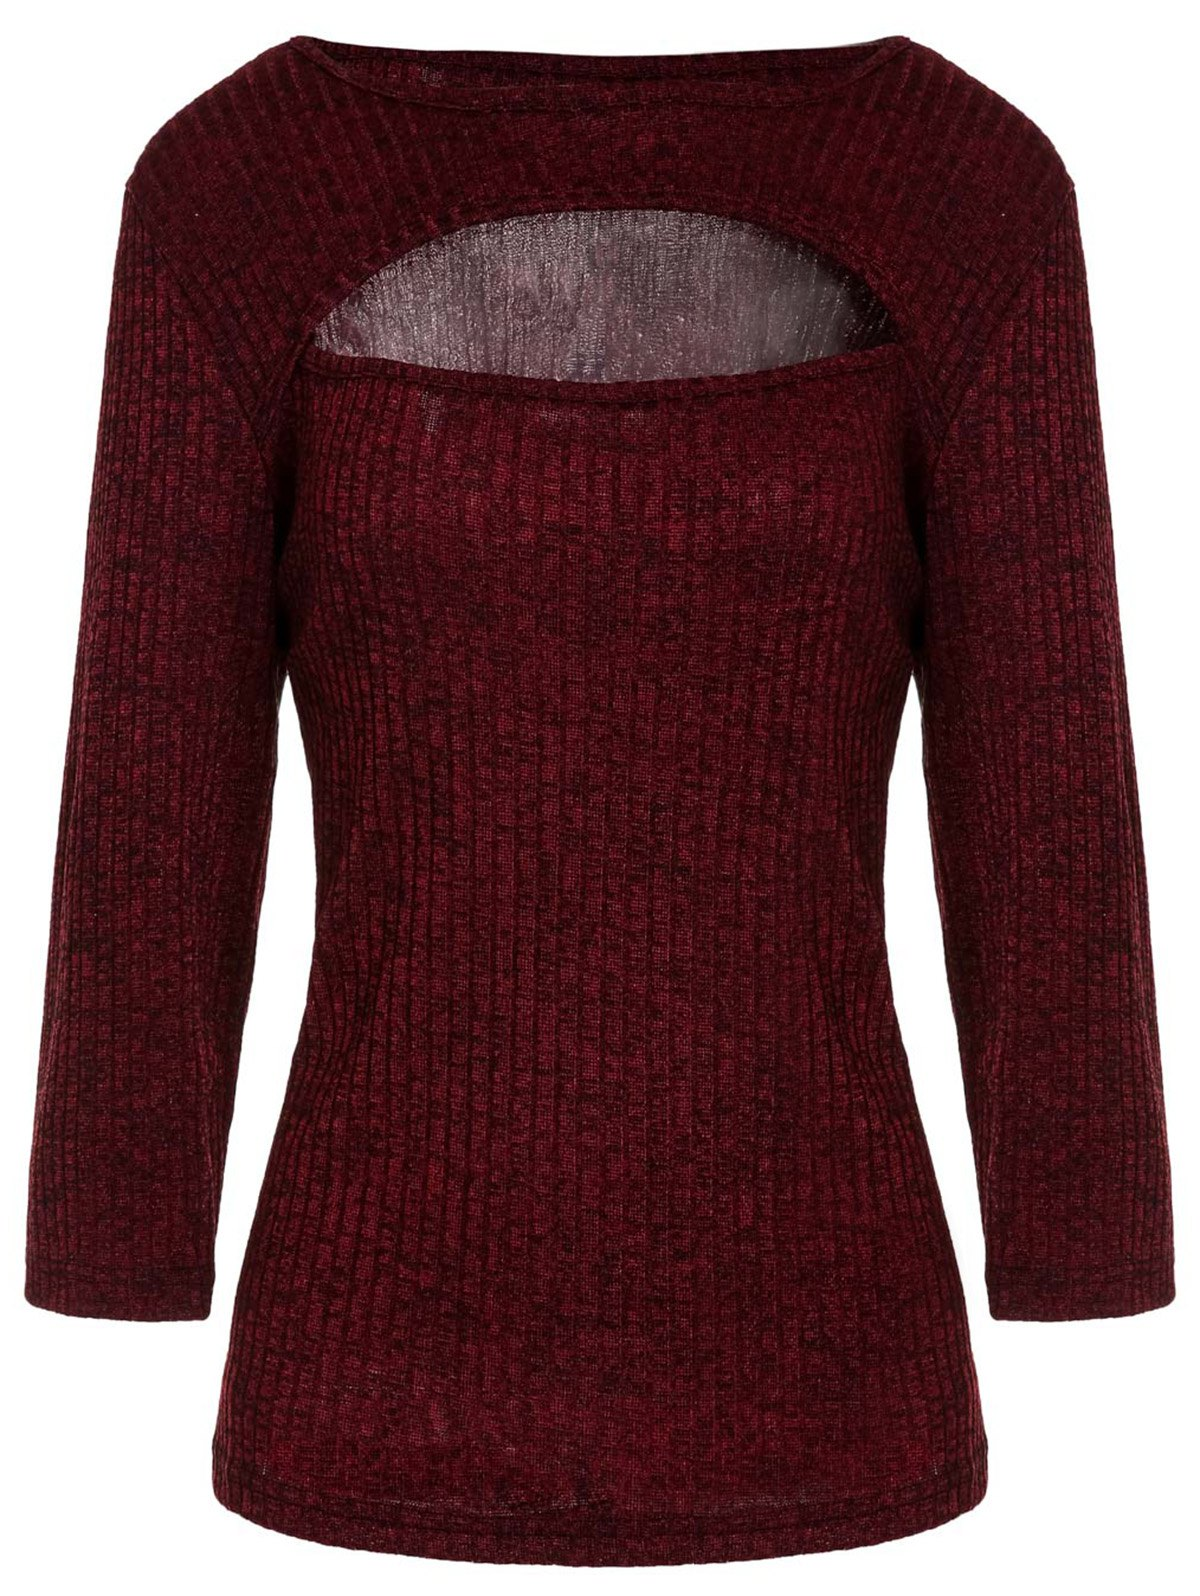 Stylish Half Sleeve Scoop Neck Hollow Out Solid Color Women's T-Shirt - PURPLISH RED 2XL